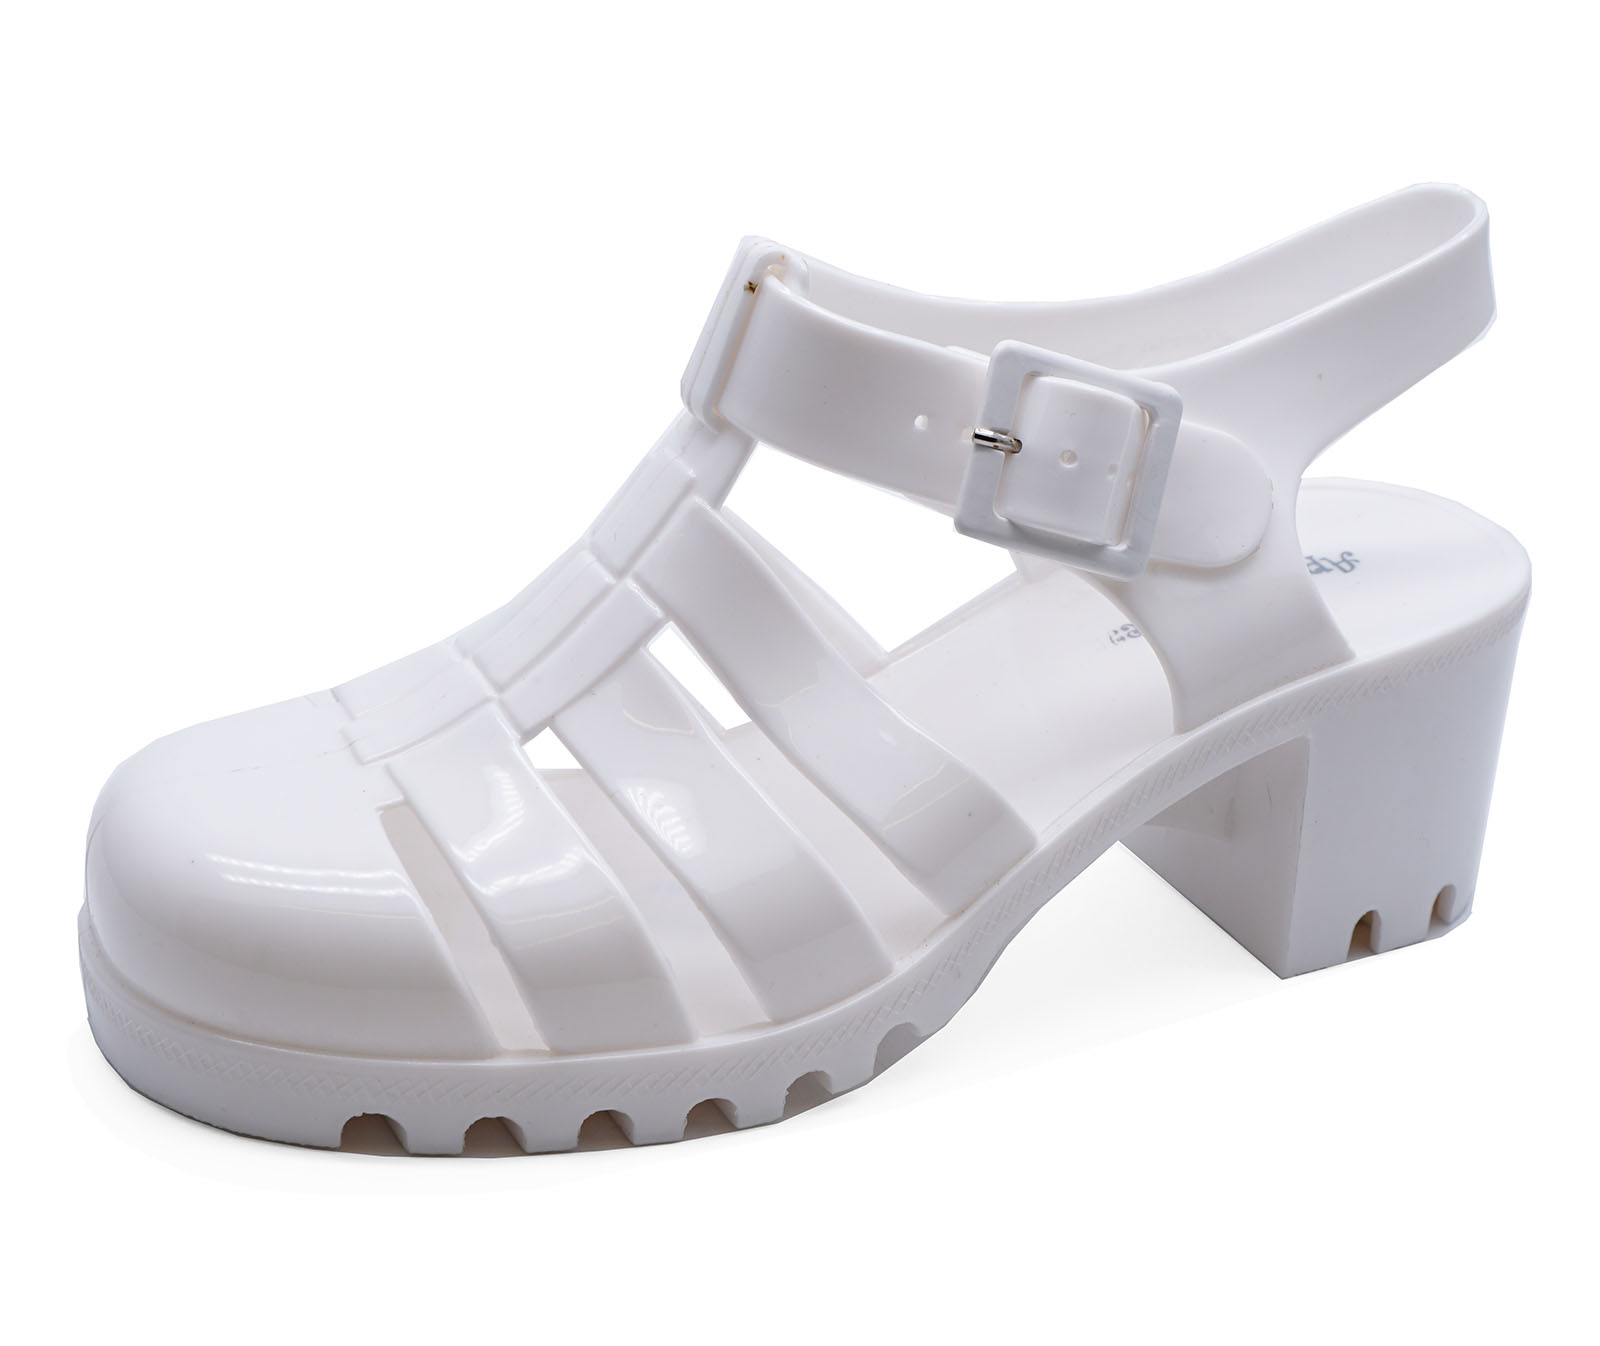 LADIES WHITE JELLY GLADIATOR RETRO SANDALS FESTIVAL BEACH HOLIDAY SHOES UK 3-8